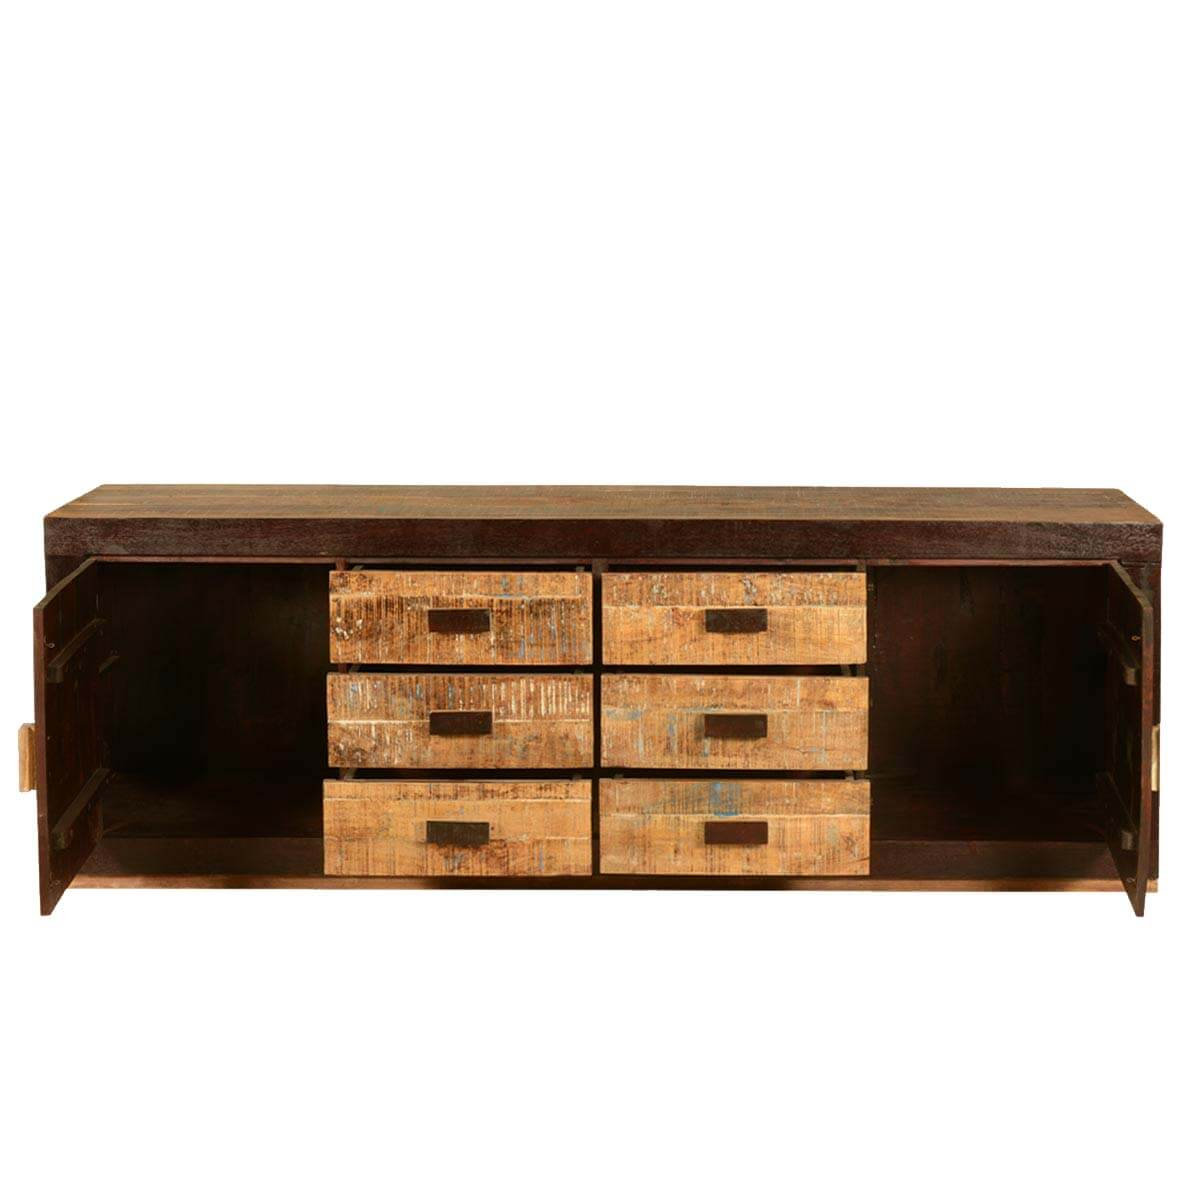 Industrial Style Solid Wood Square Storage Trunk 5 Drawer: Rustic Block Design Mango Wood Chest Of Drawers Buffet